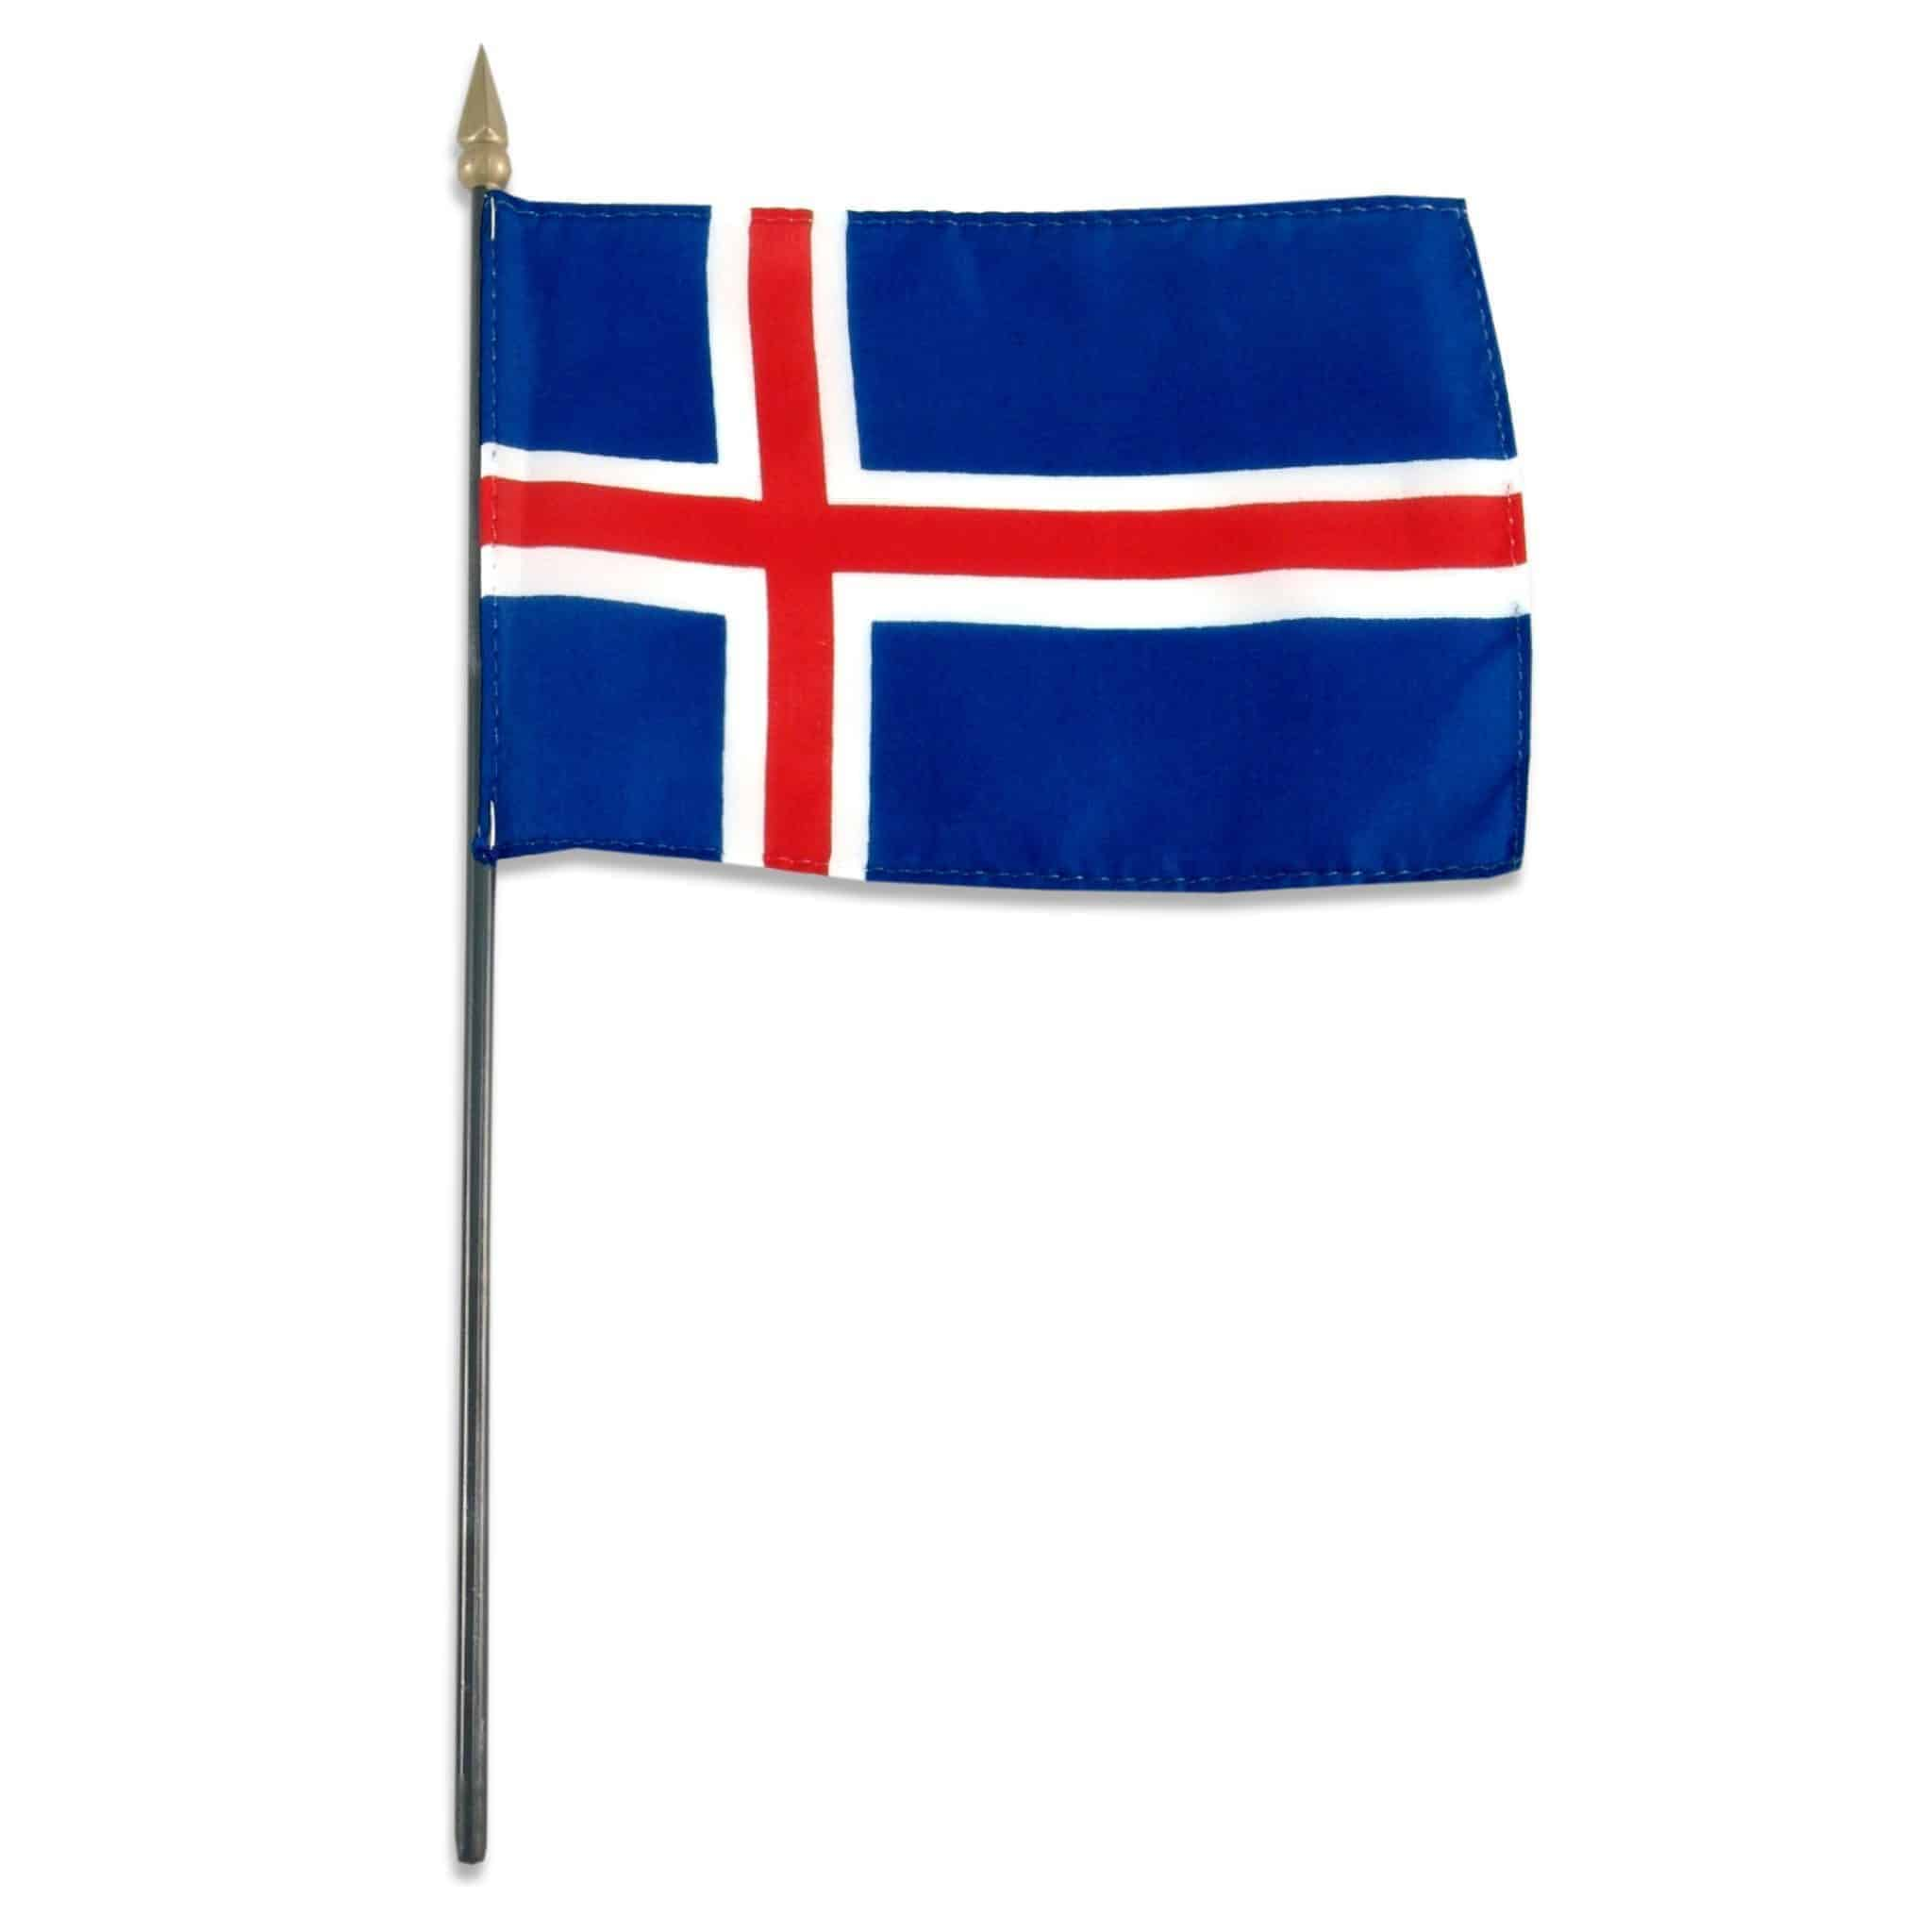 Is history repeating itself in Iceland?